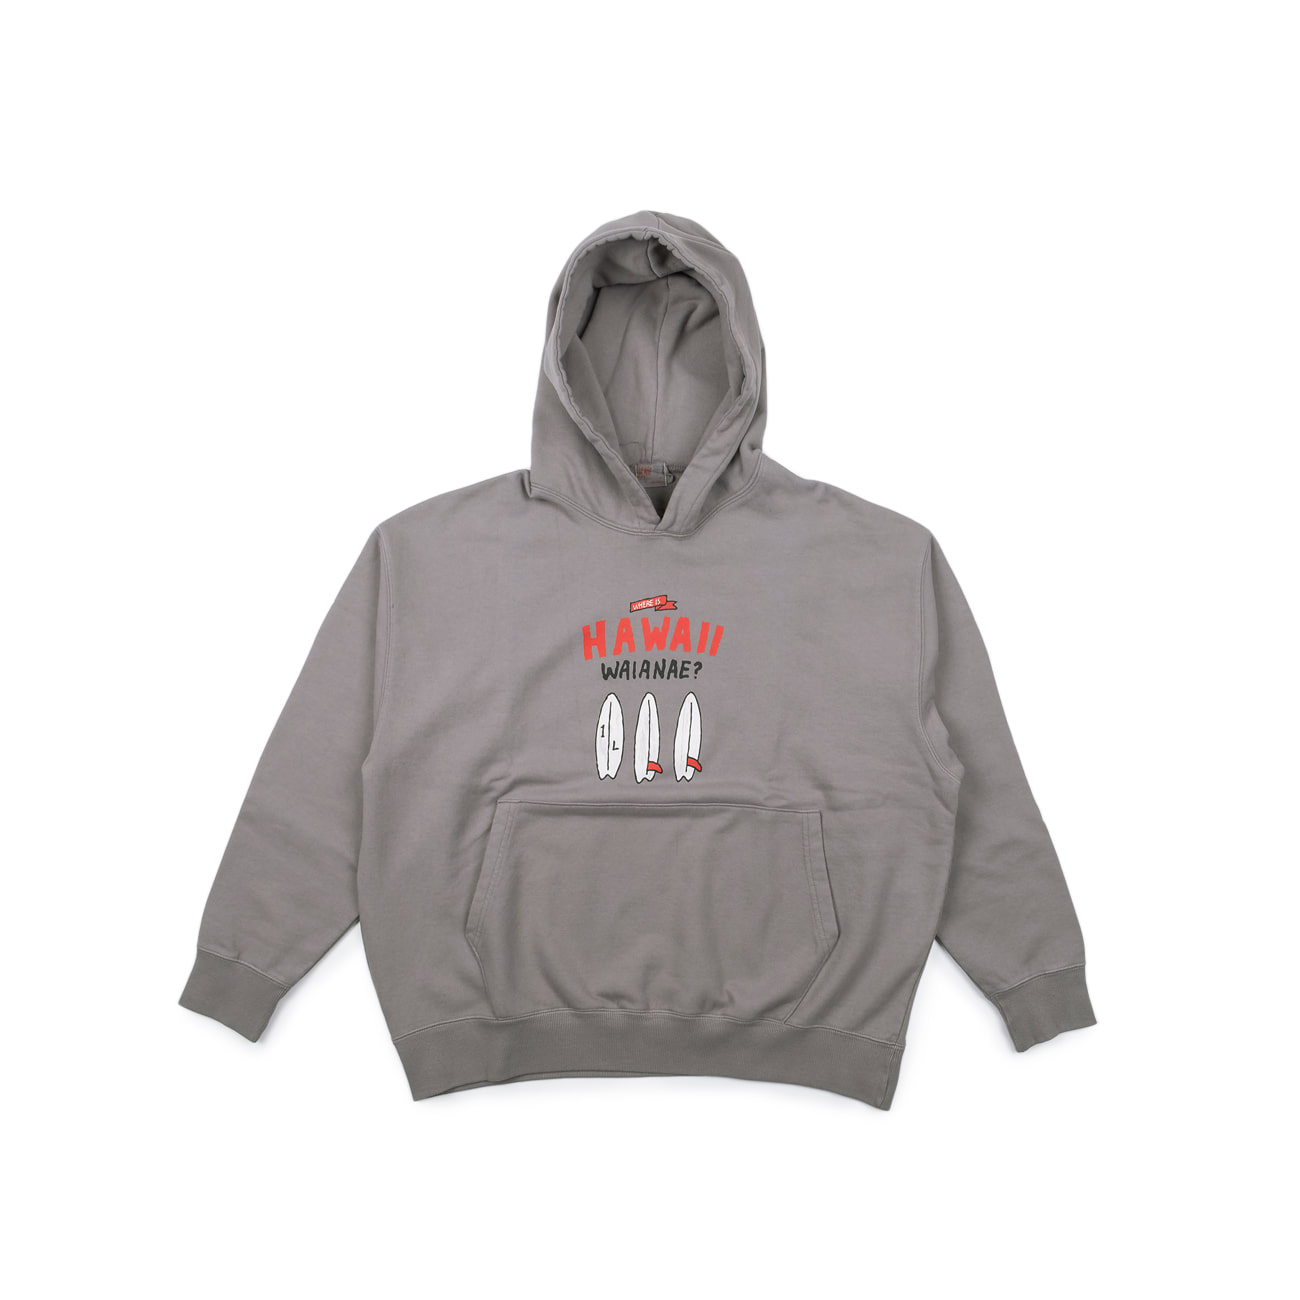 M.Nii x 1/L Hawaii Wide Hooded